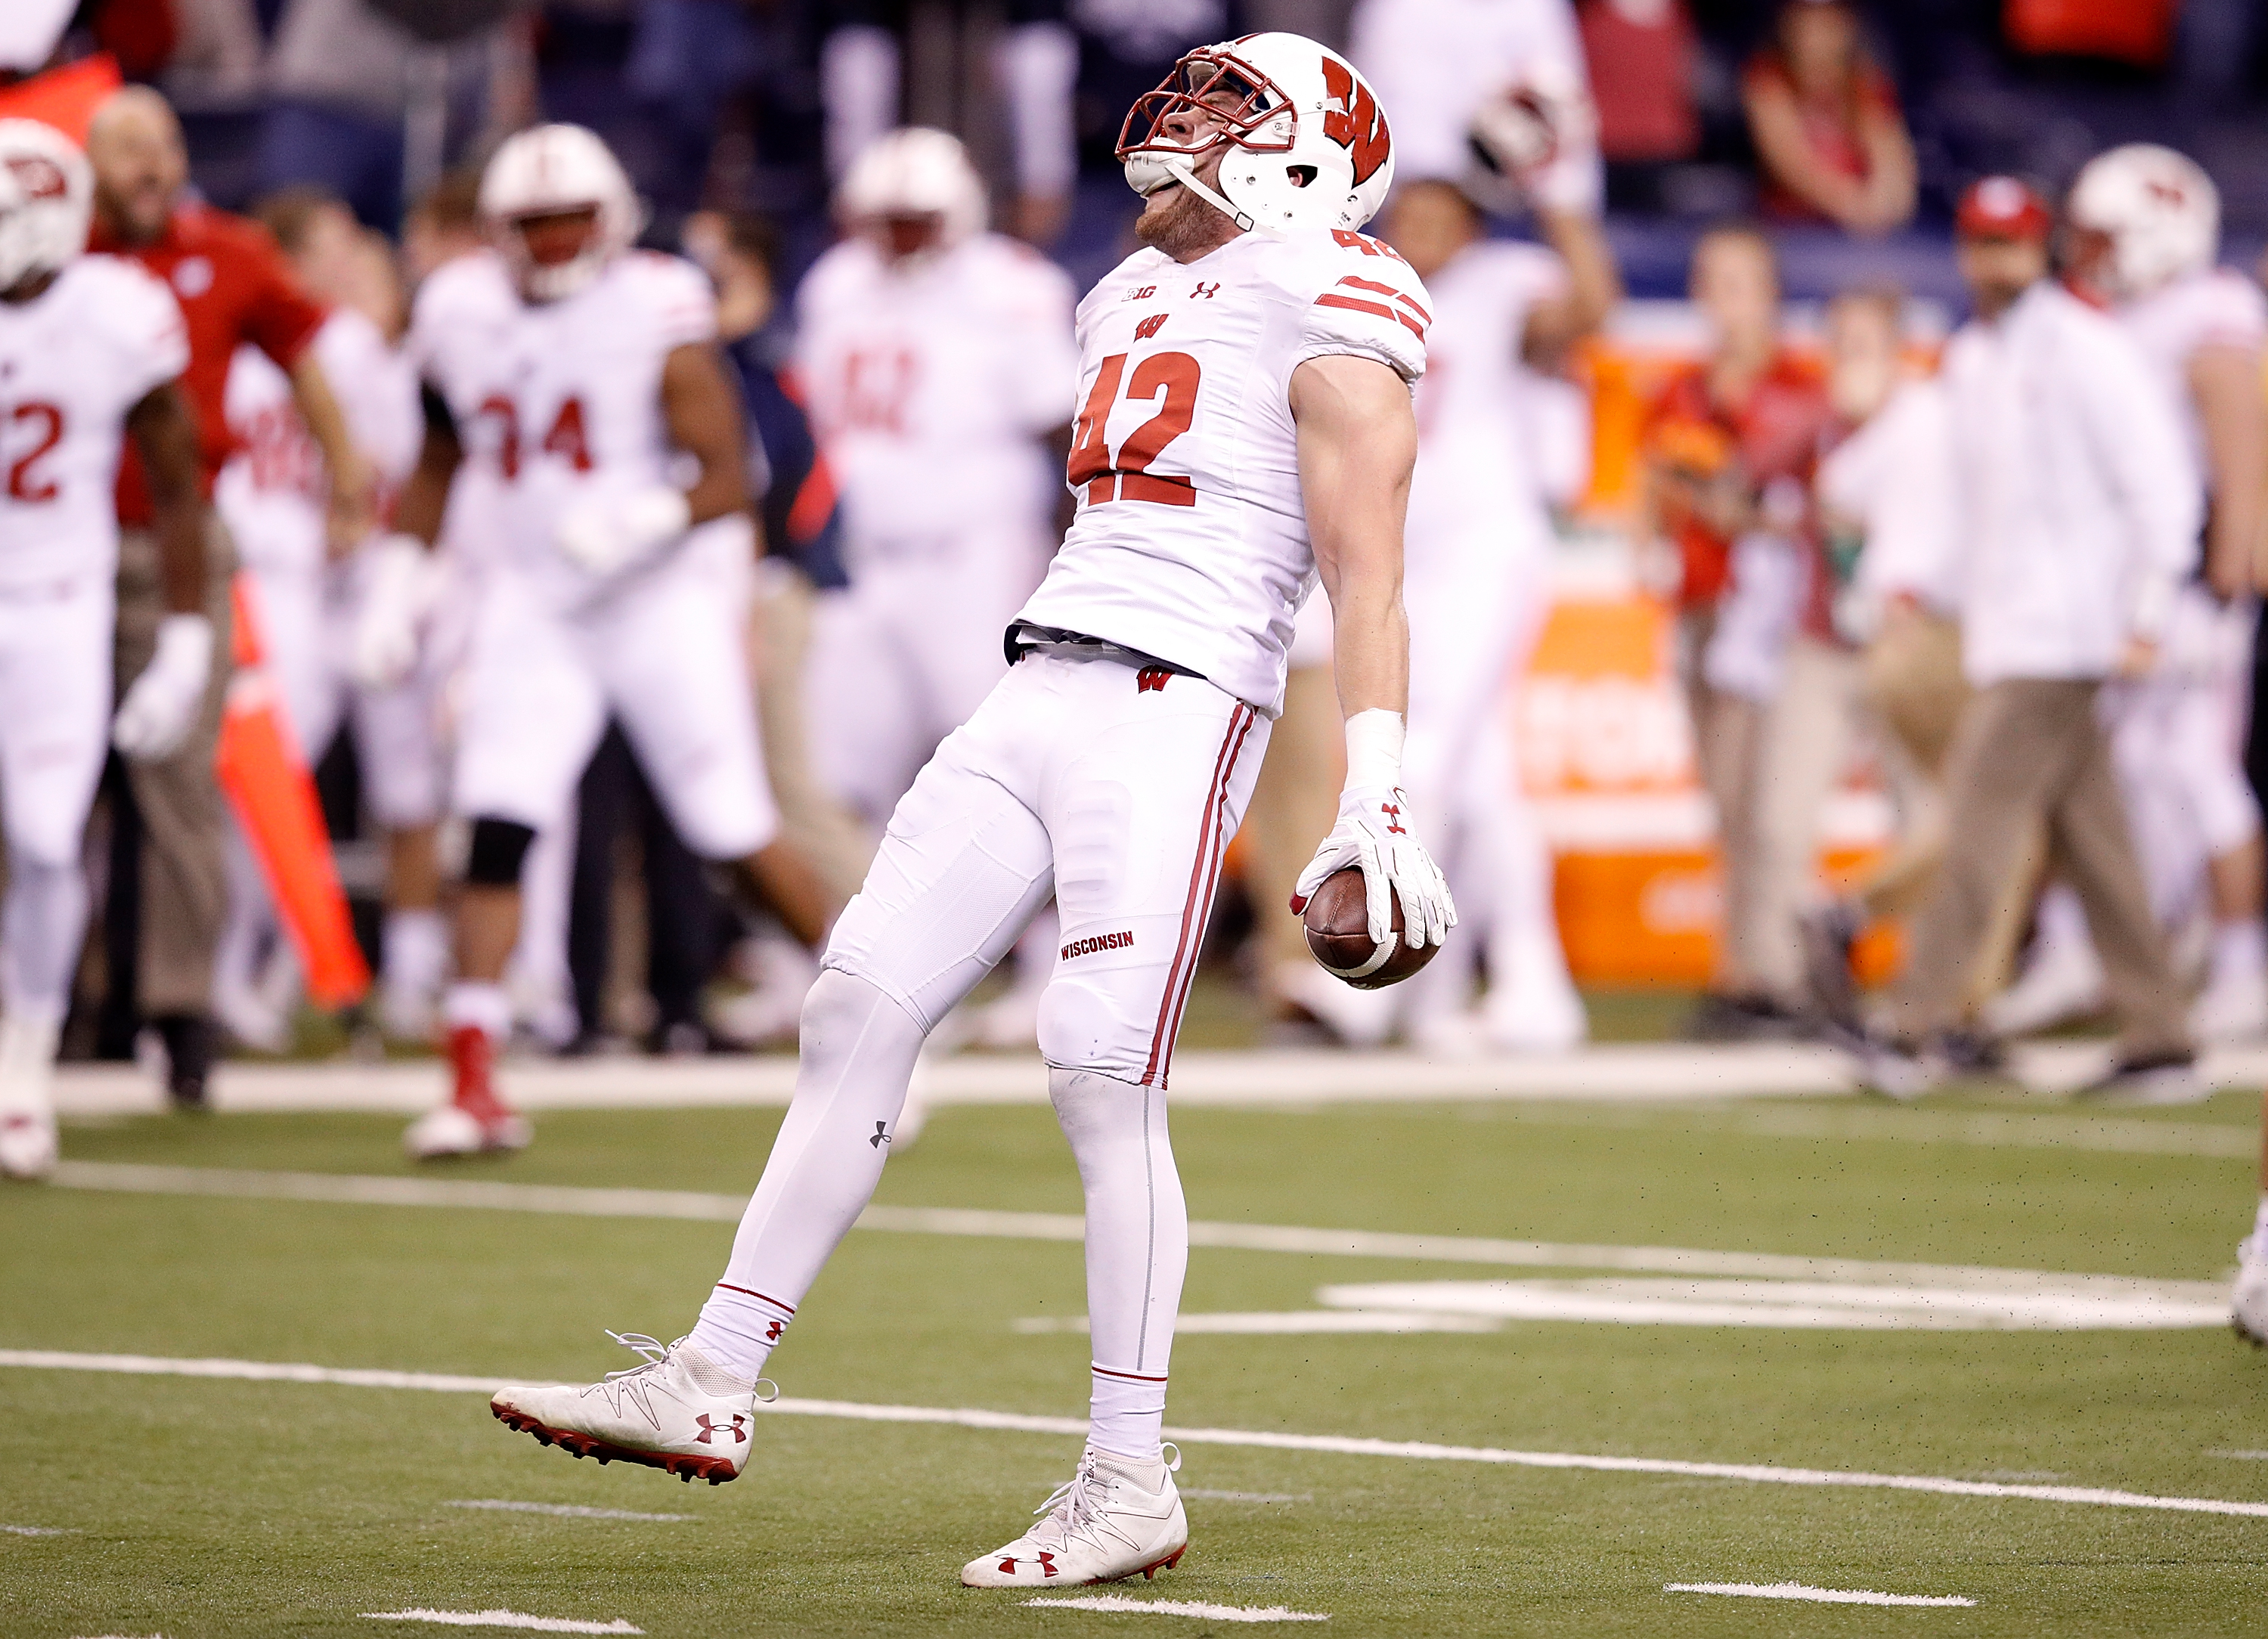 Cotton Bowl Classic Preview: UW Looking to End Western Michigan's Unbeaten Season